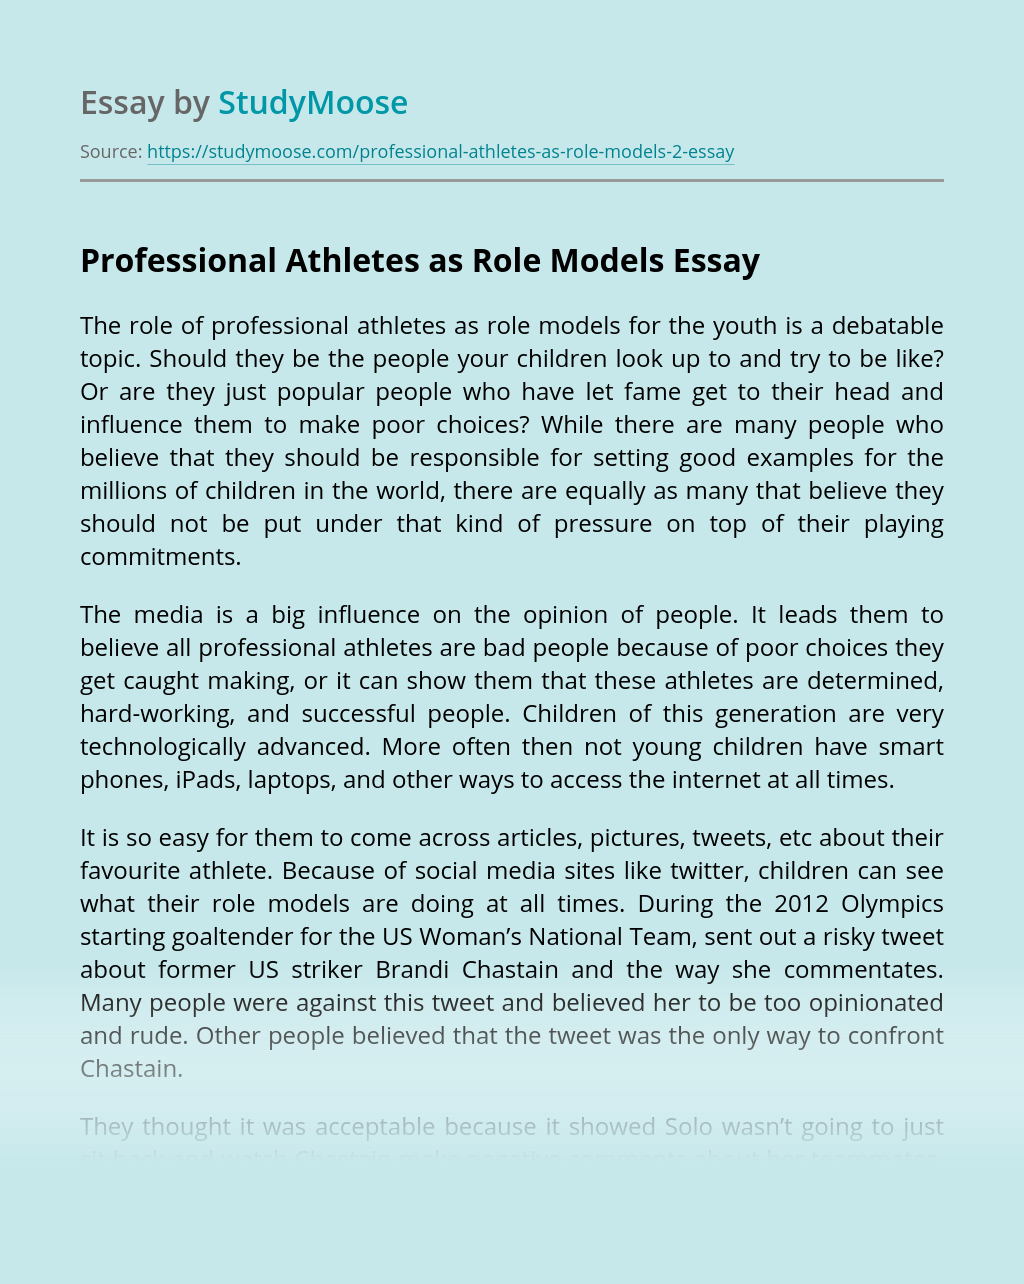 Professional Athletes as Role Models